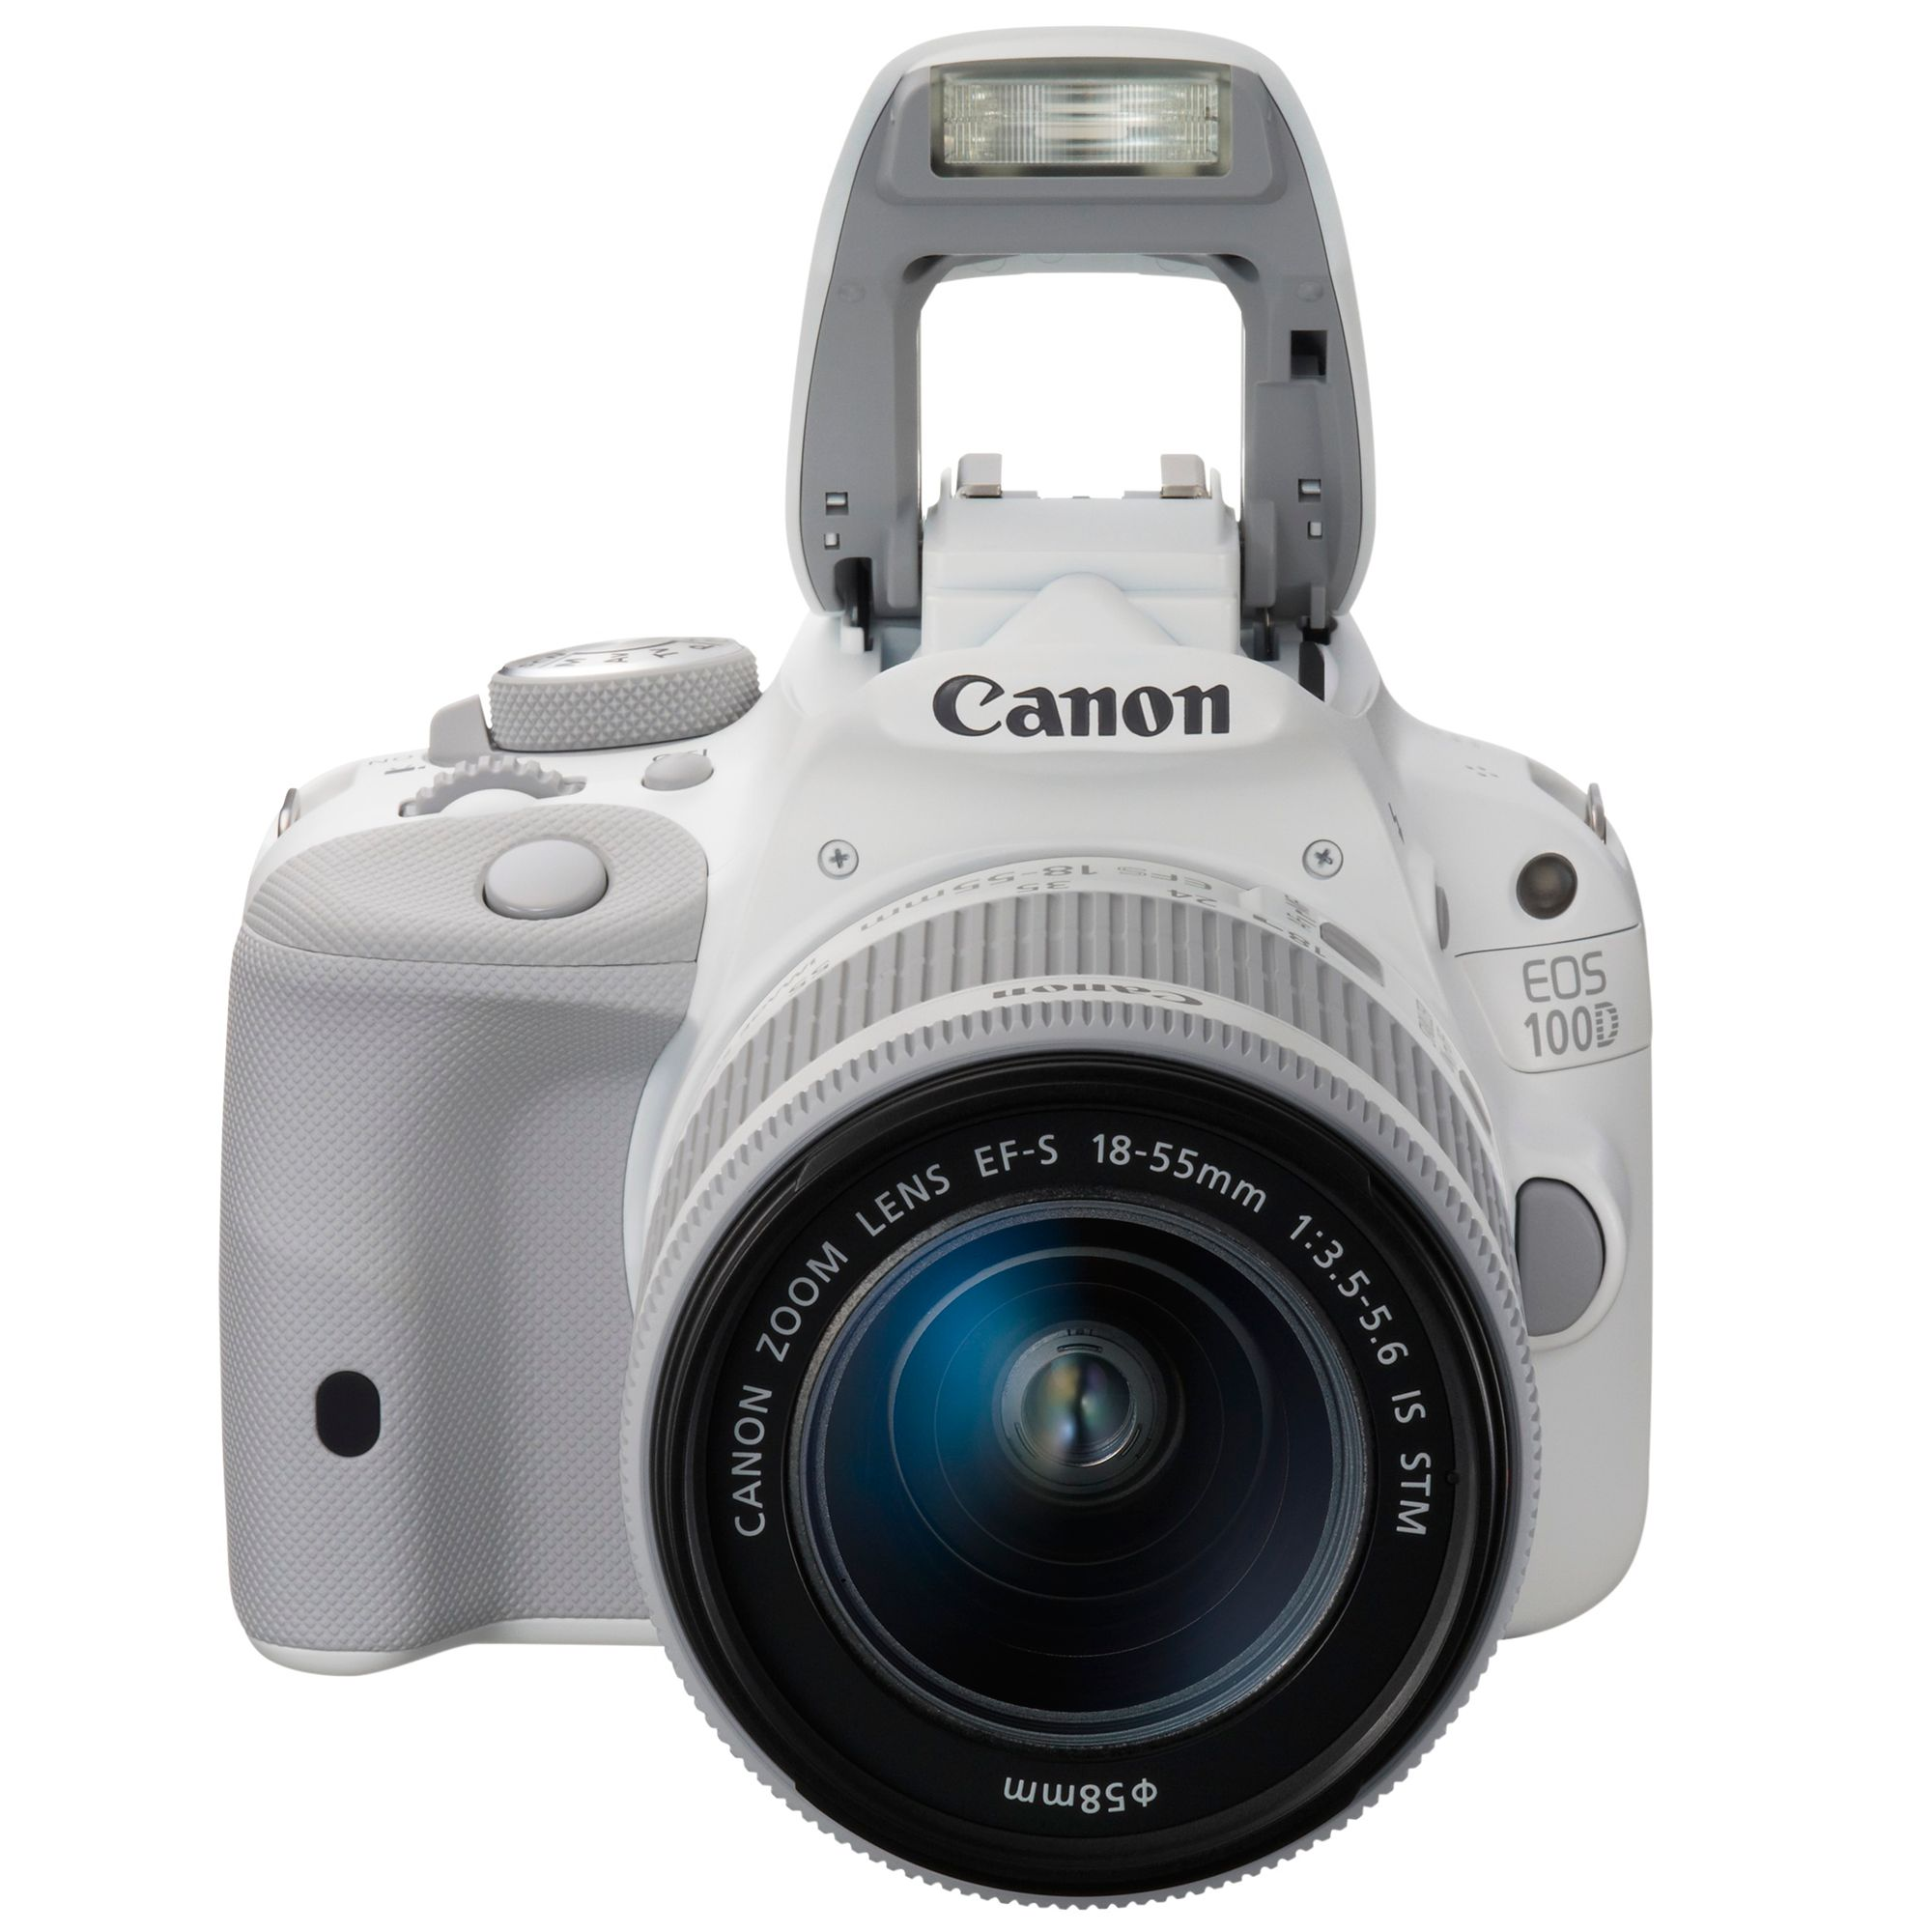 Camera White Dslr Cameras buy canon eos 100d digital slr camera with 18 55mm is stm lens hd hd